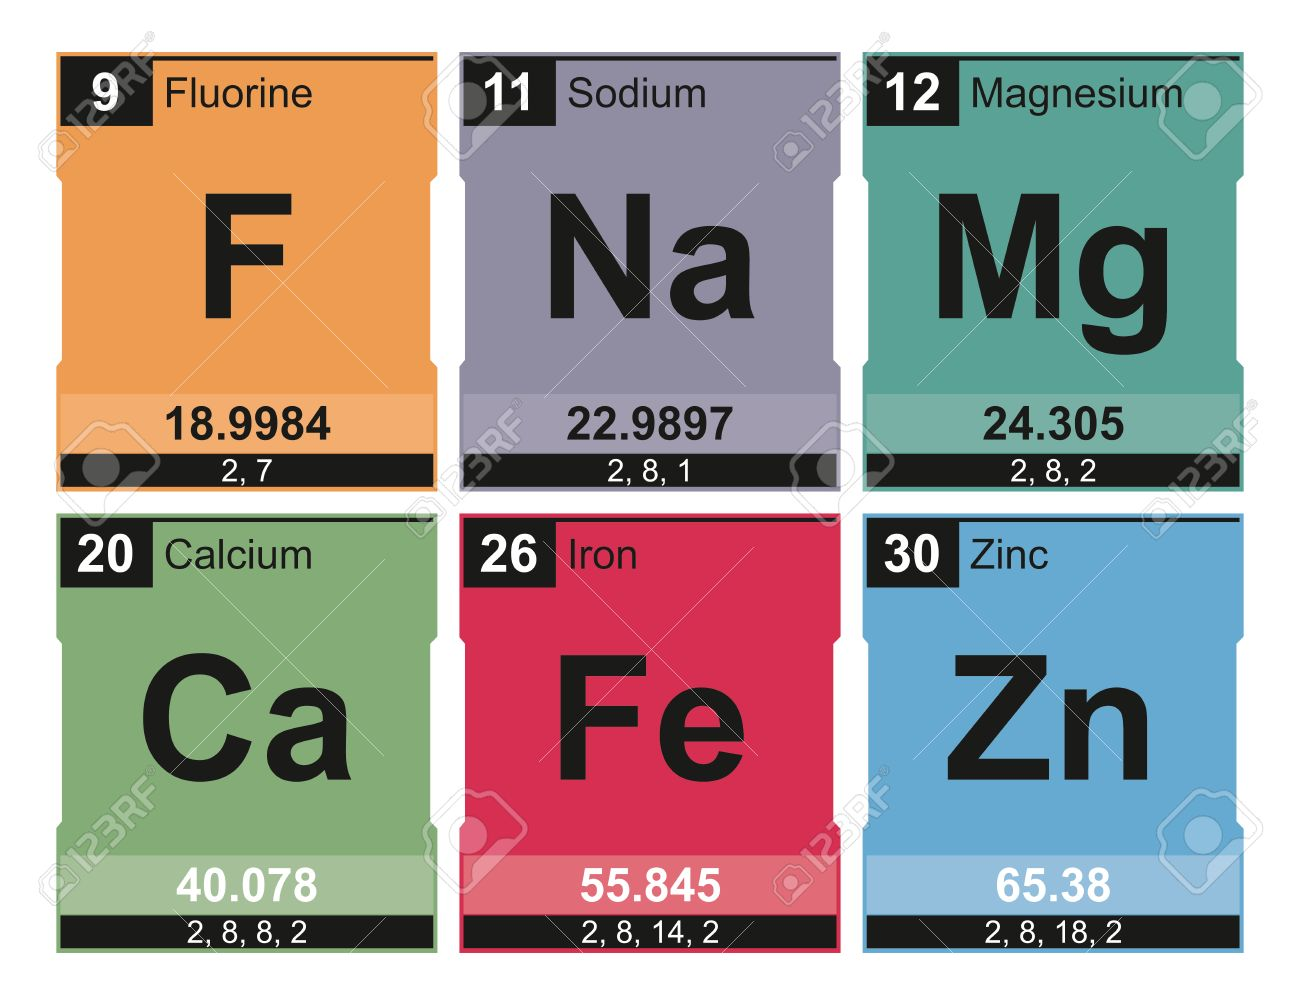 U symbol periodic table image collections periodic table images f symbol periodic table image collections periodic table images si symbol periodic table image collections periodic gamestrikefo Gallery